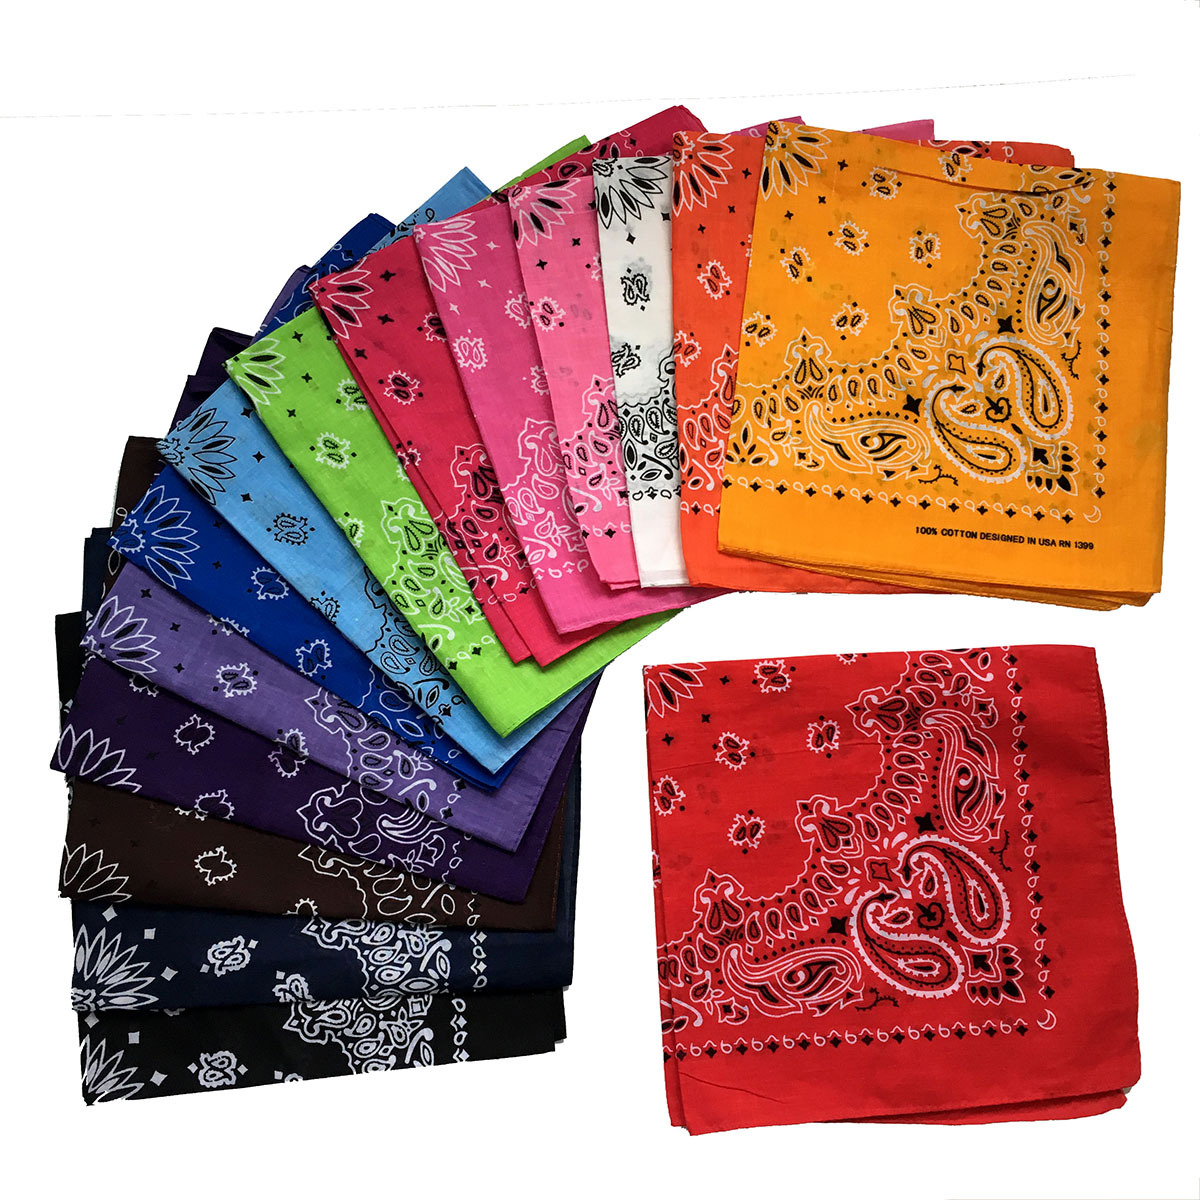 Multipurpose Unisex Paisley Bandanas Hair Bands Headwear Hip-hop Neck Head Wrap Scarf Wristscarf Accessories For Men Woman